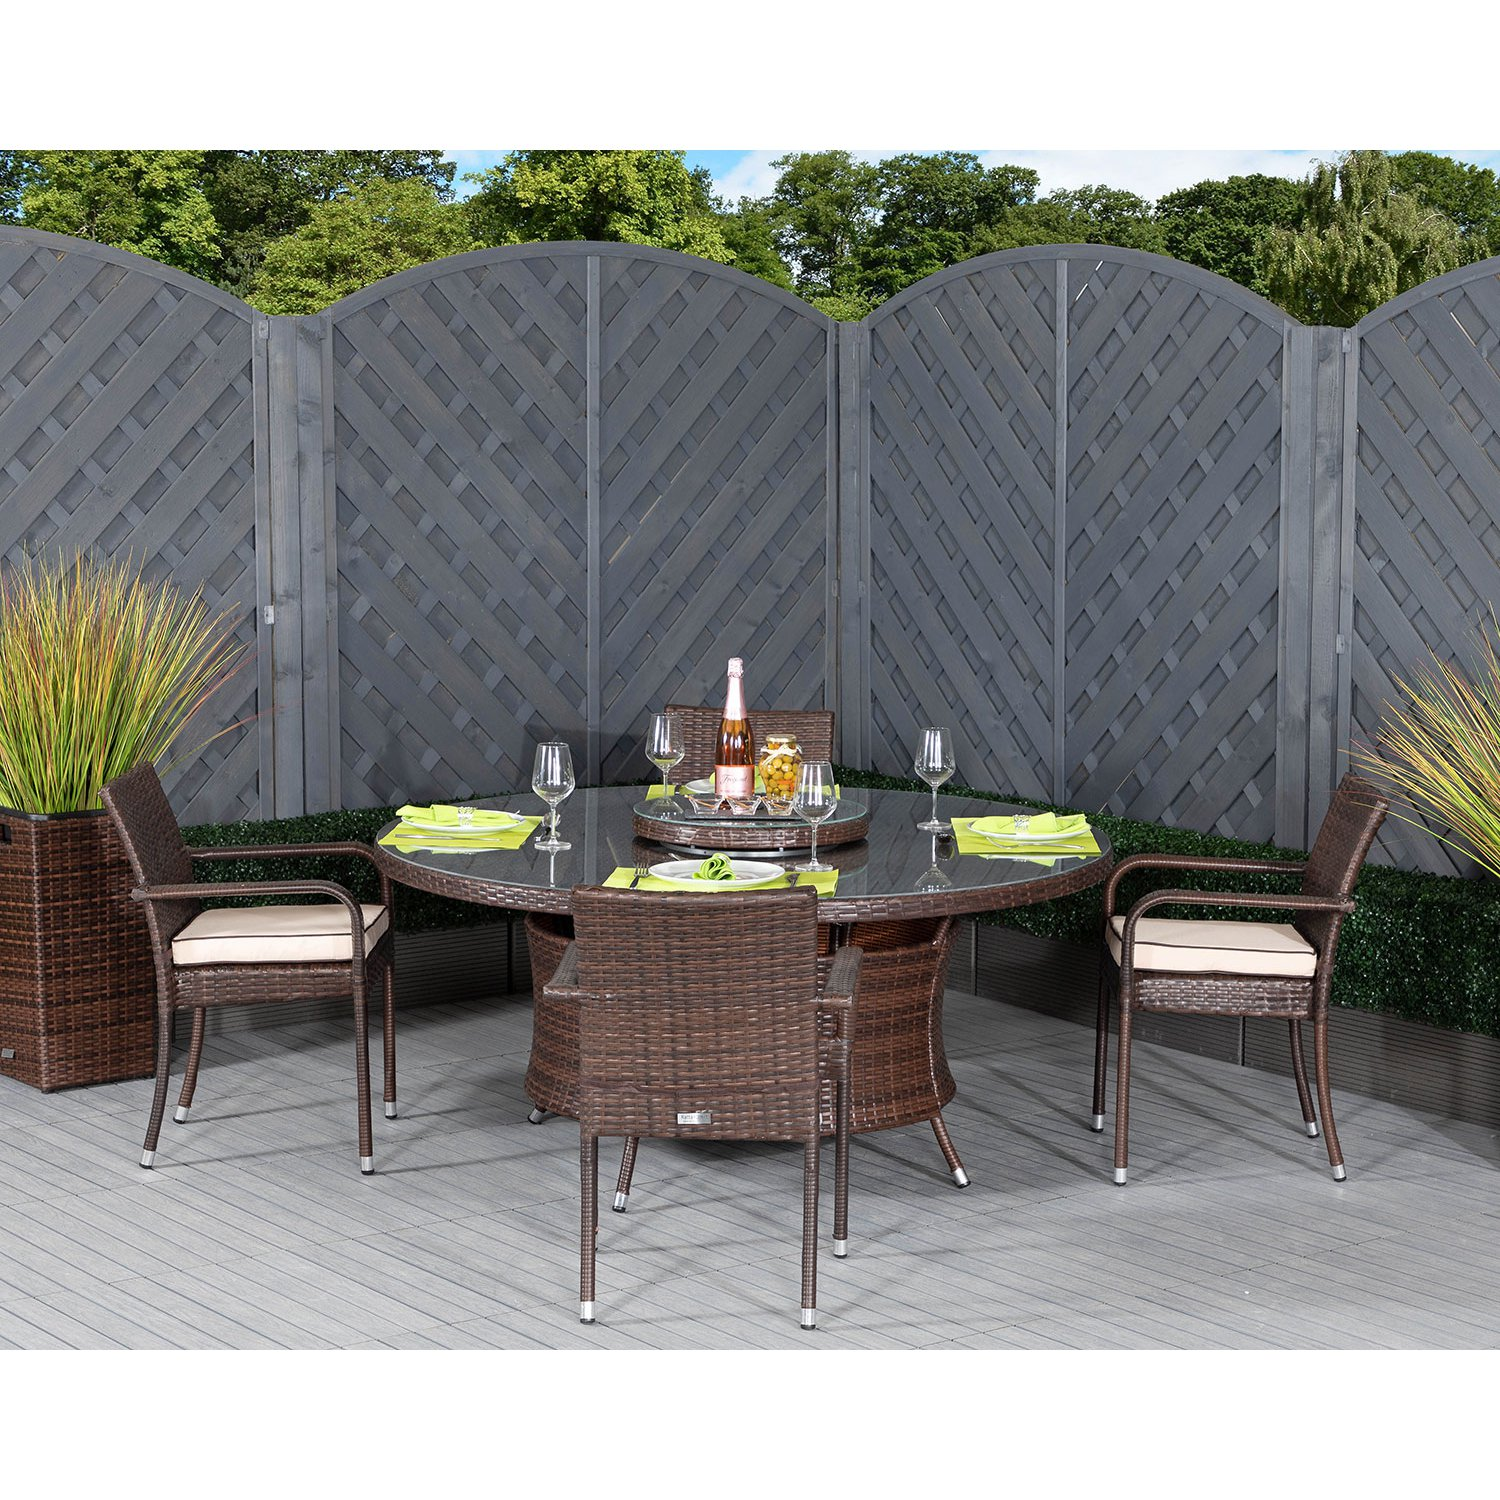 image-Roma 4 Rattan Garden Chairs, Large Round Table and Lazy Susan Set in Chocolate and Cream